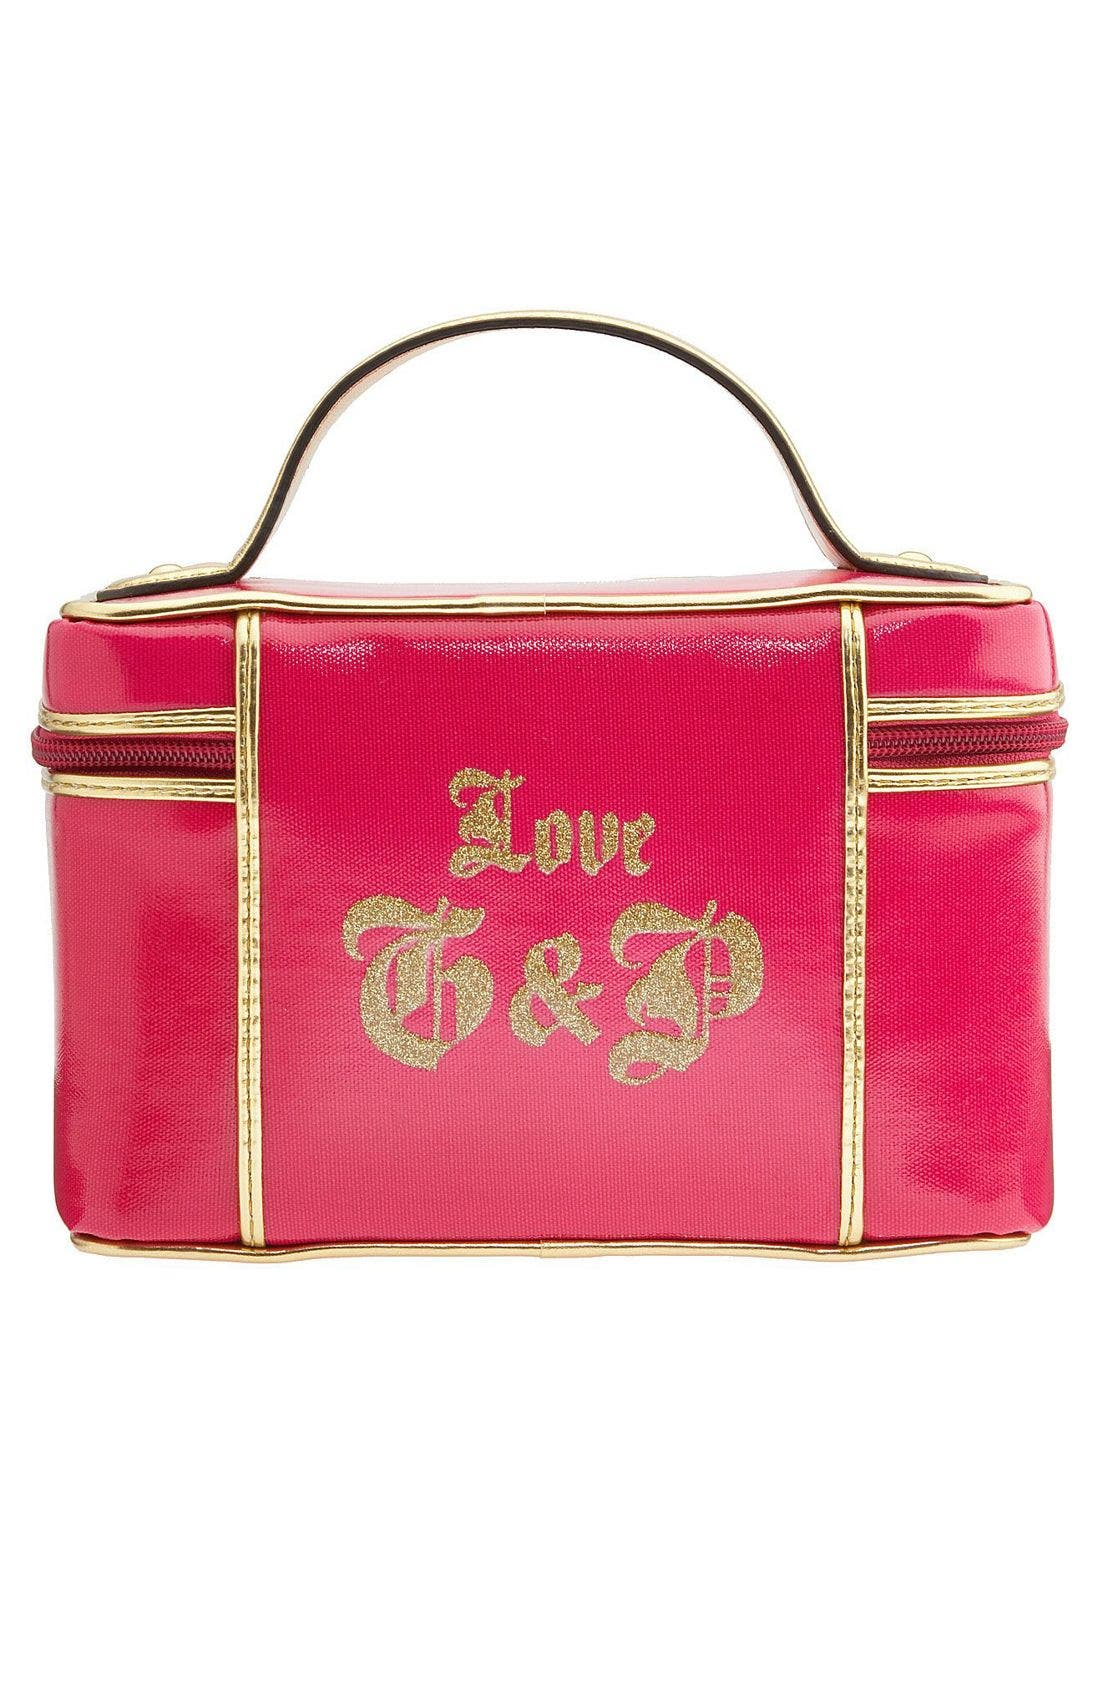 'Viva la Juicy' Cosmetics Case,                             Alternate thumbnail 2, color,                             659